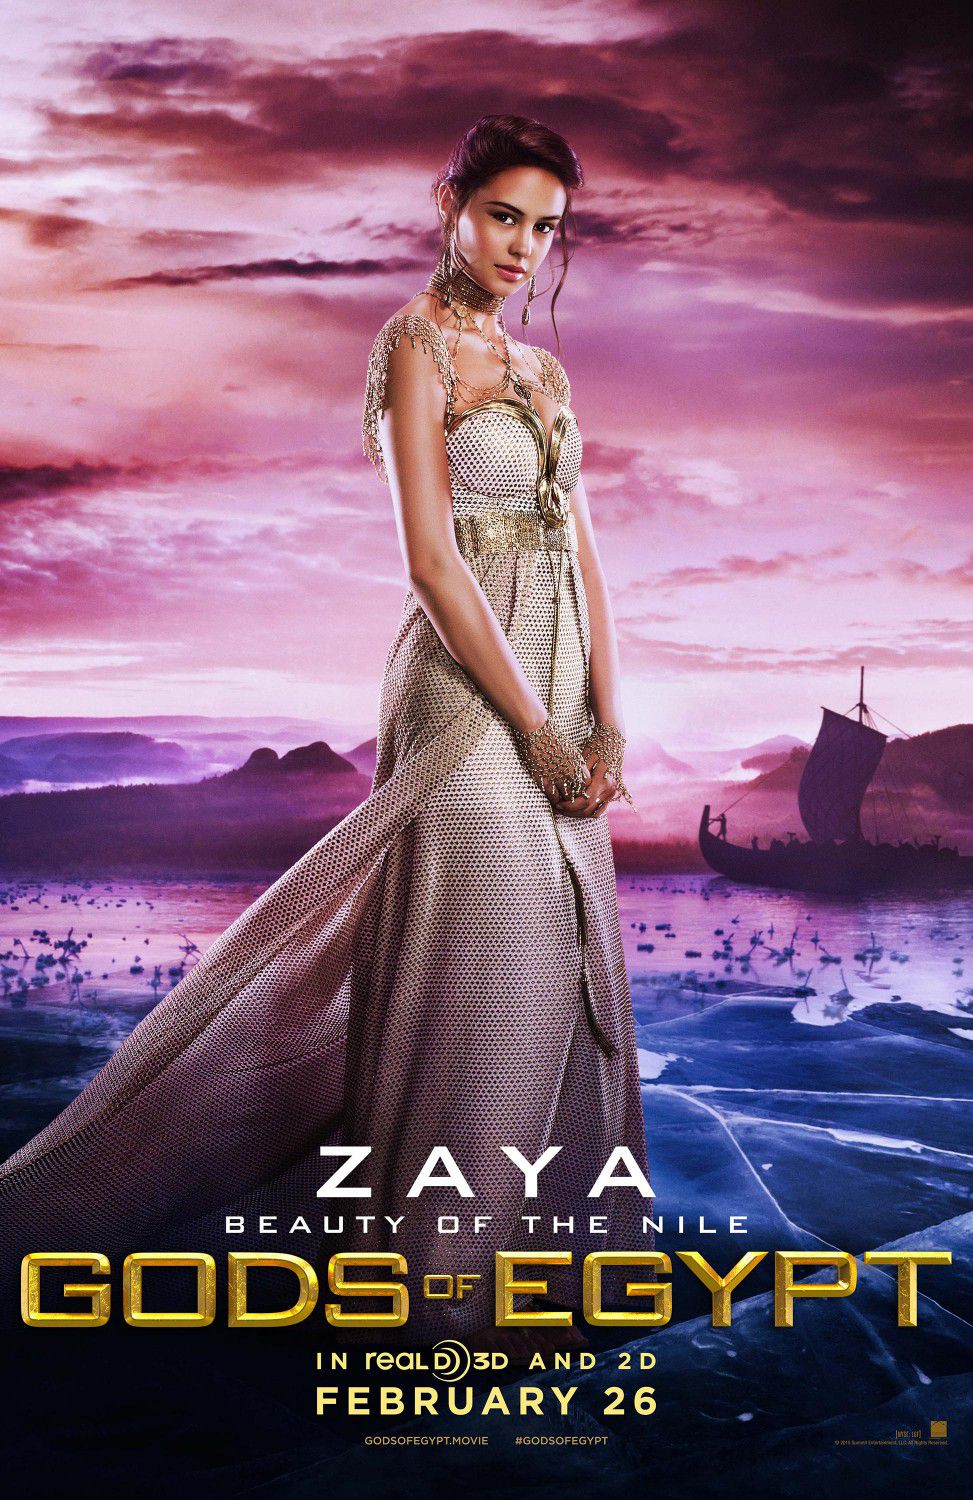 Courtney Eaton as Zaya